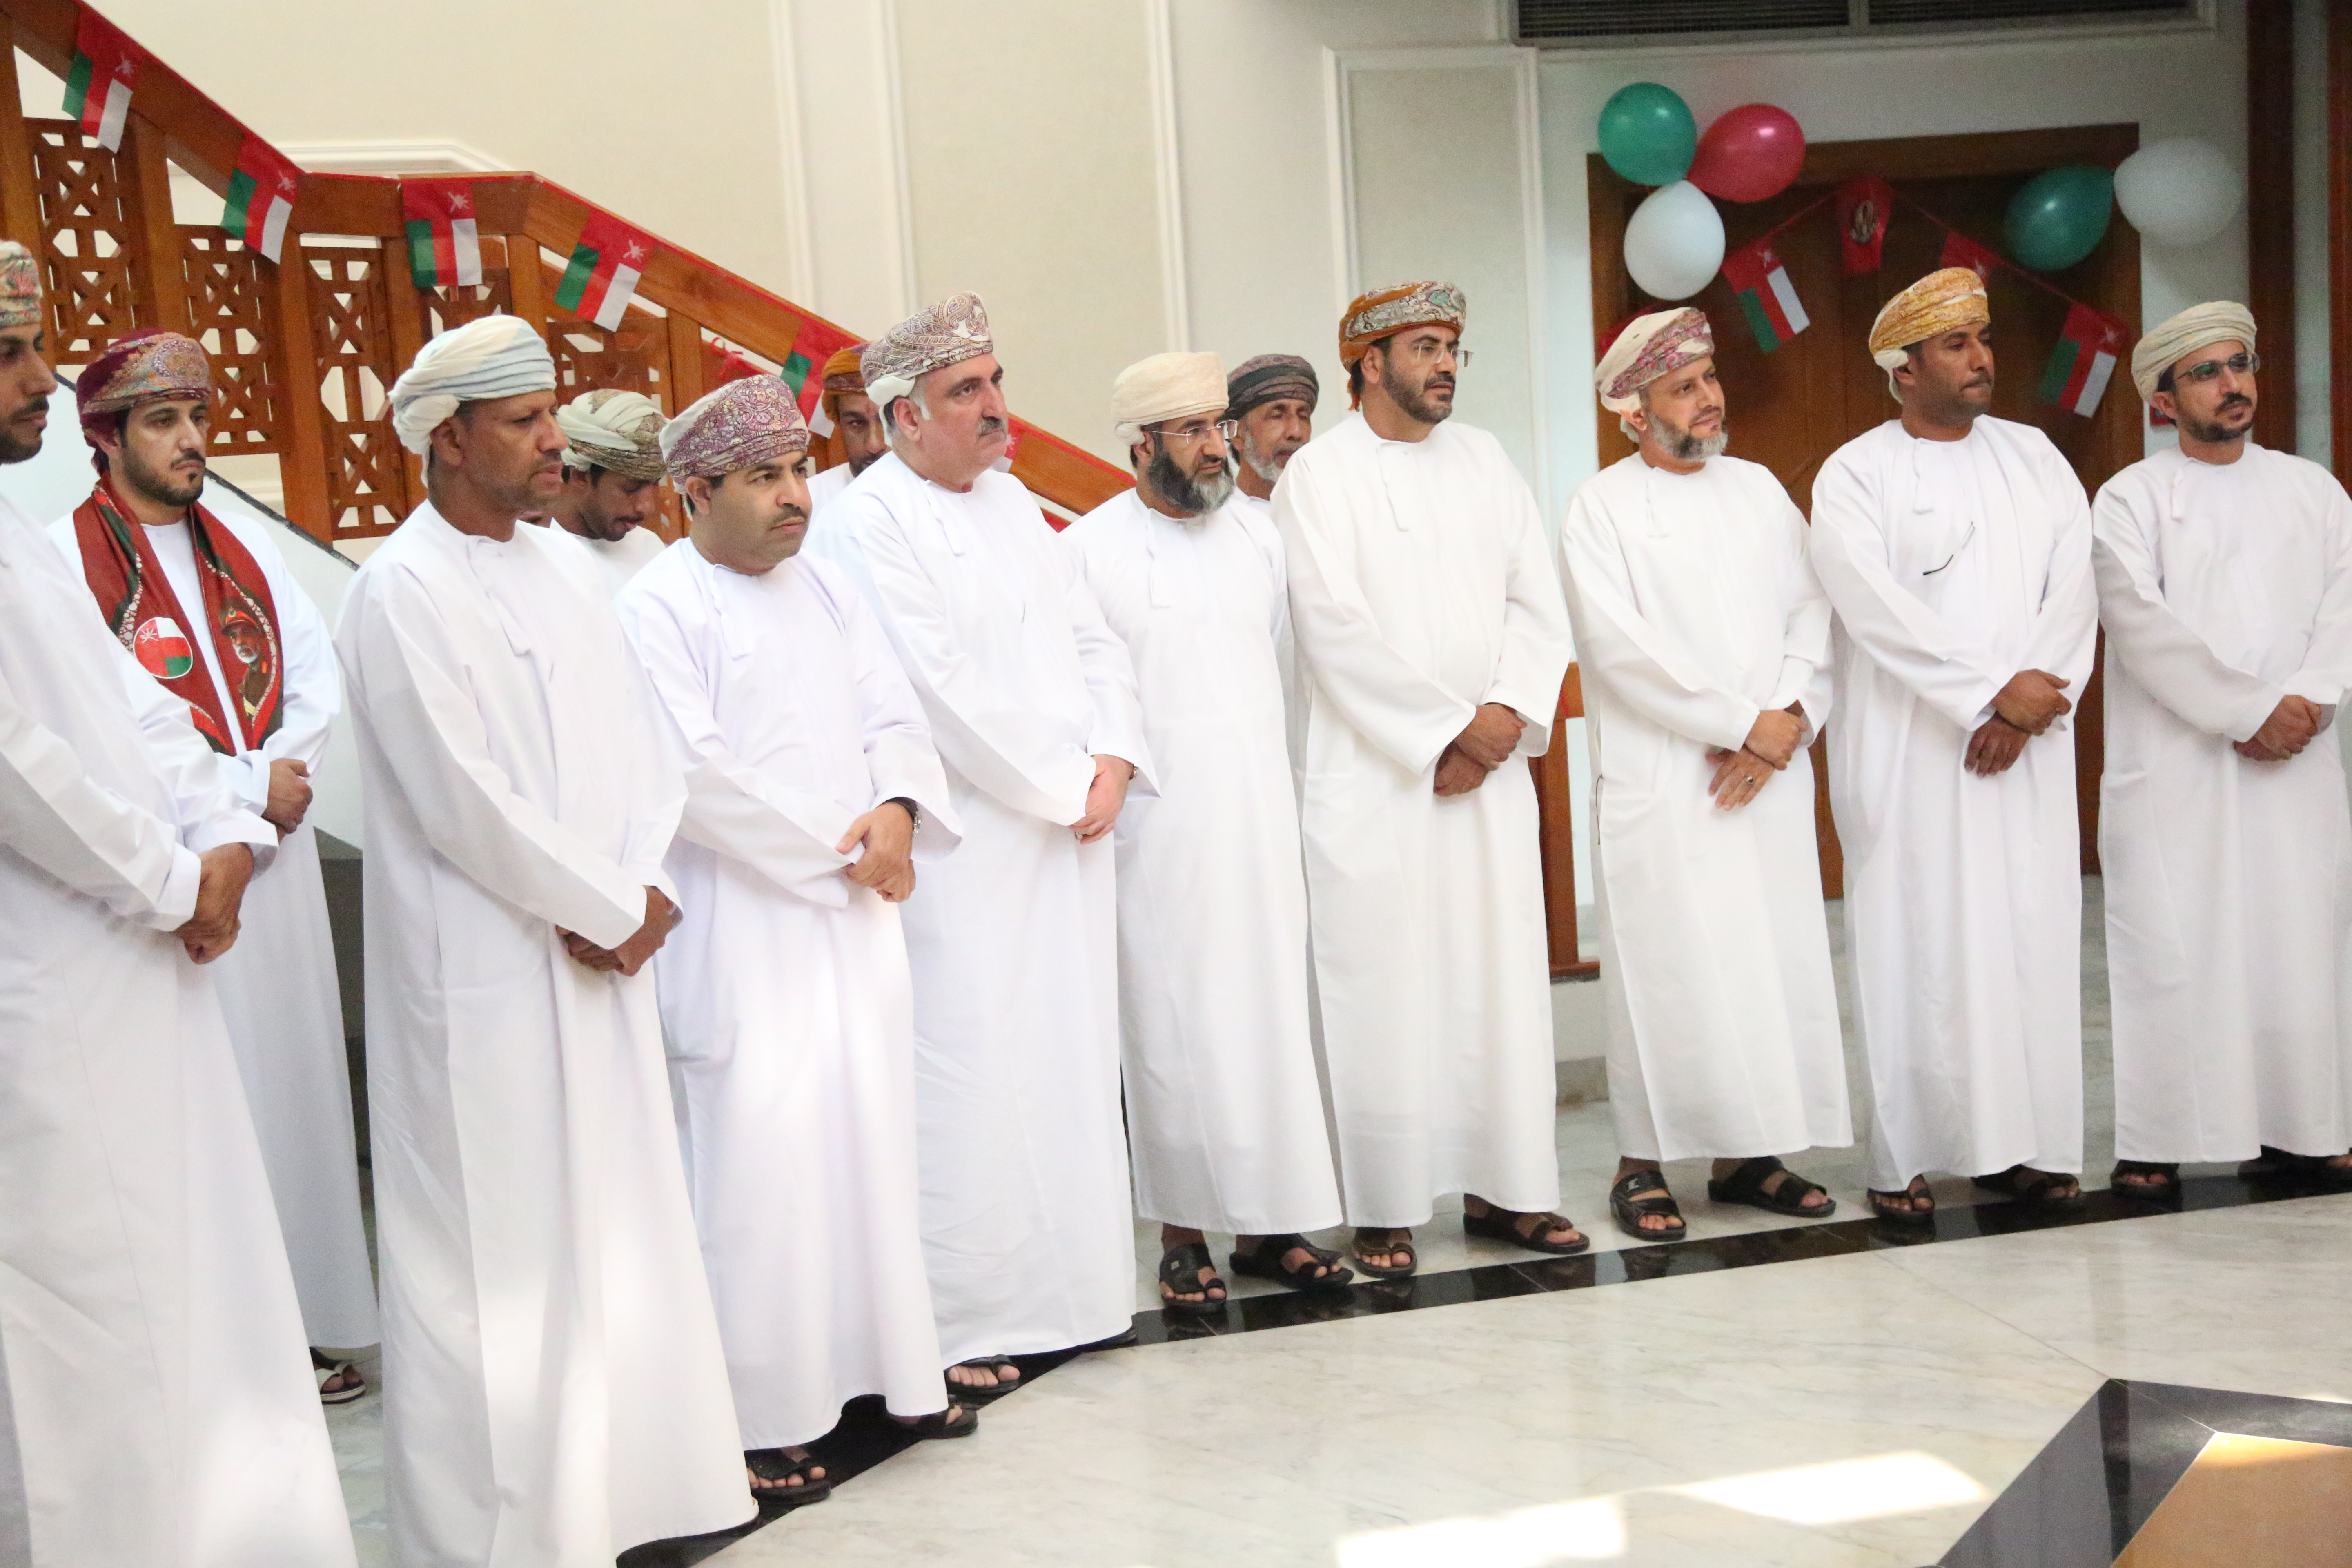 The Secretariat General of the Education Council celebrates the glorious 46th anniversary of the National Day